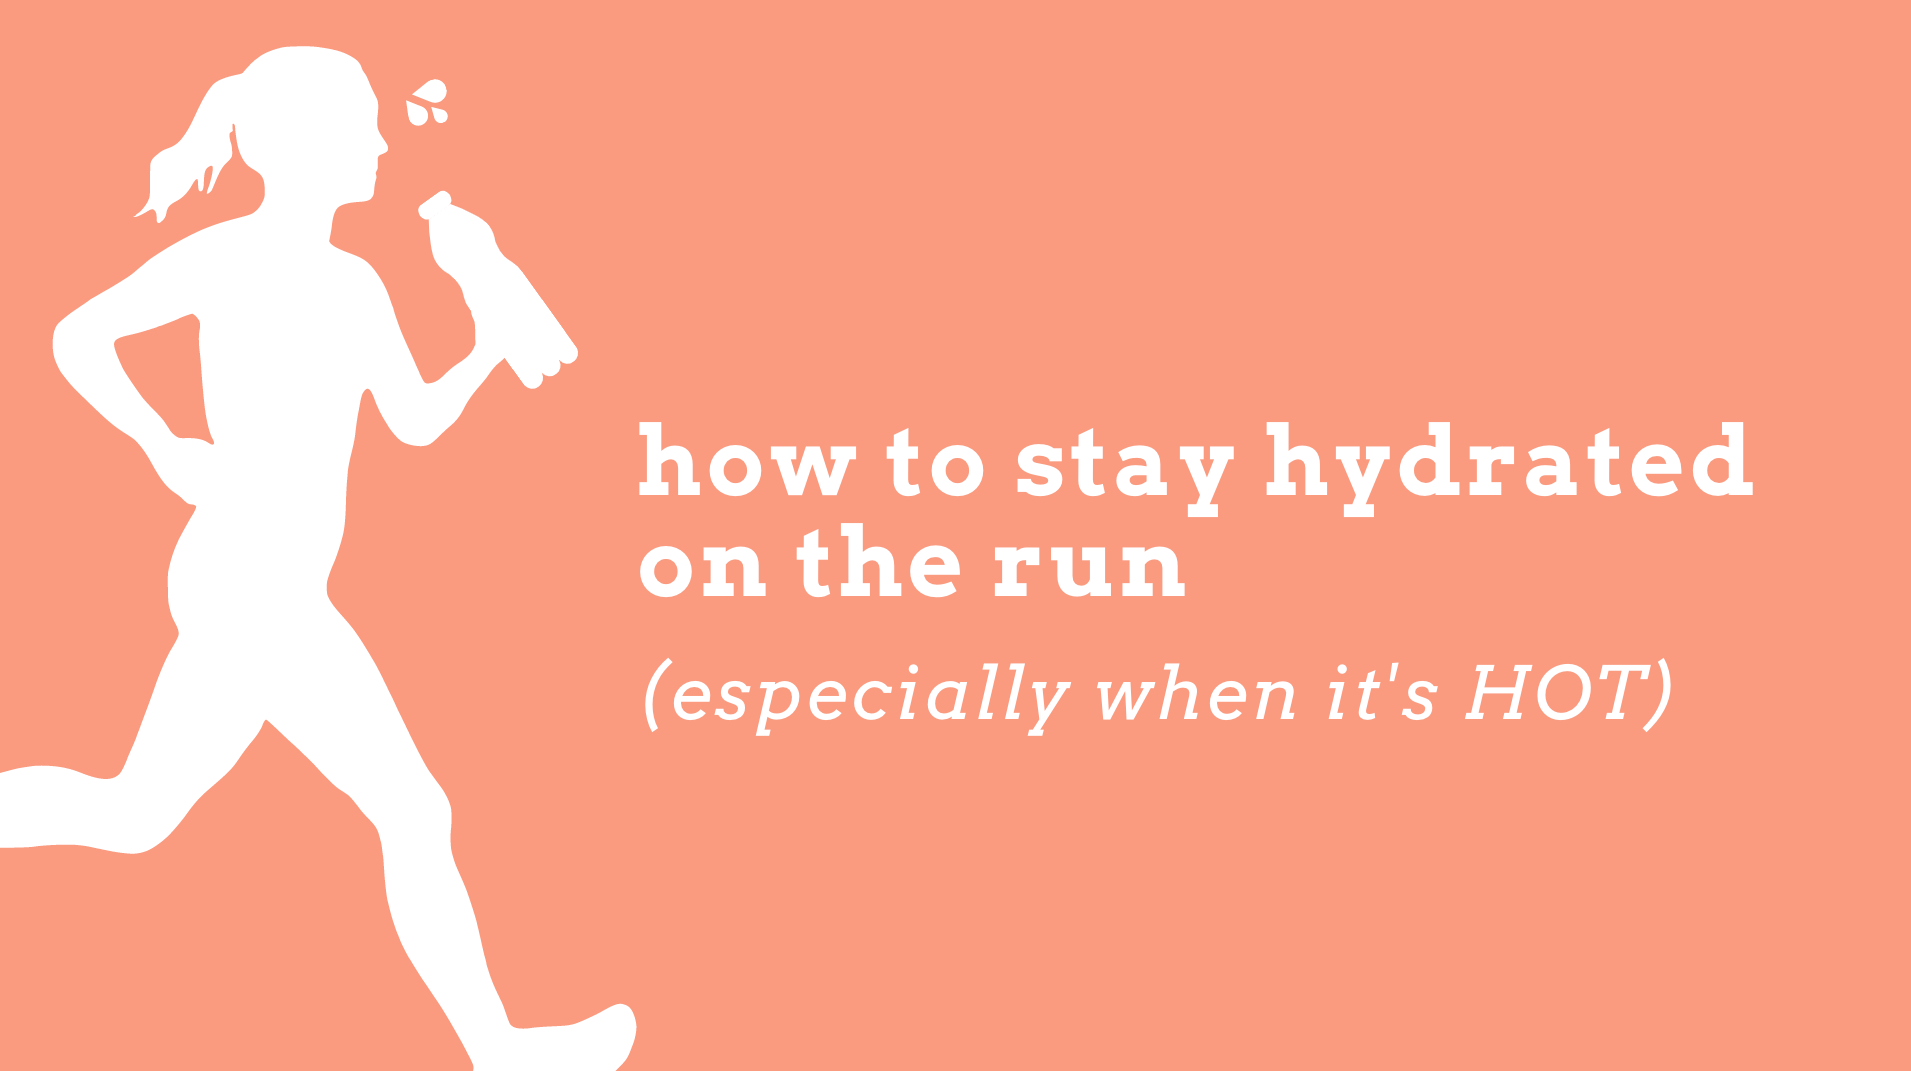 how to stay hydrated on the run while it's hot